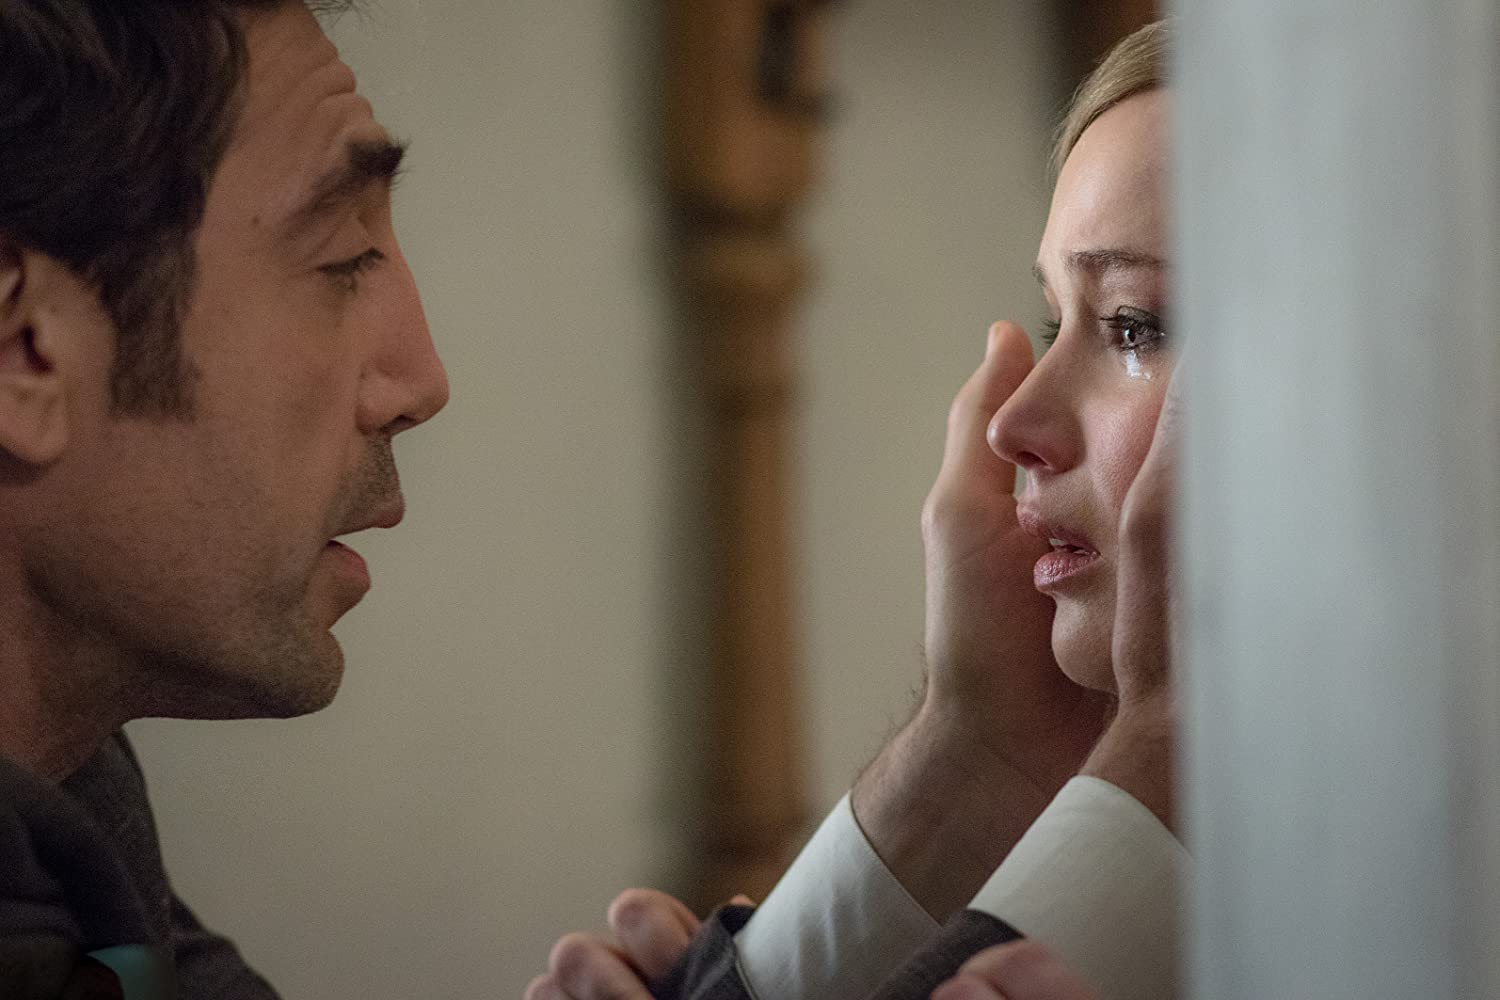 Javier Bardem as Him and Jennifer Lawrence as Mother in Mother! (2017). He holds her face, Mother is crying.